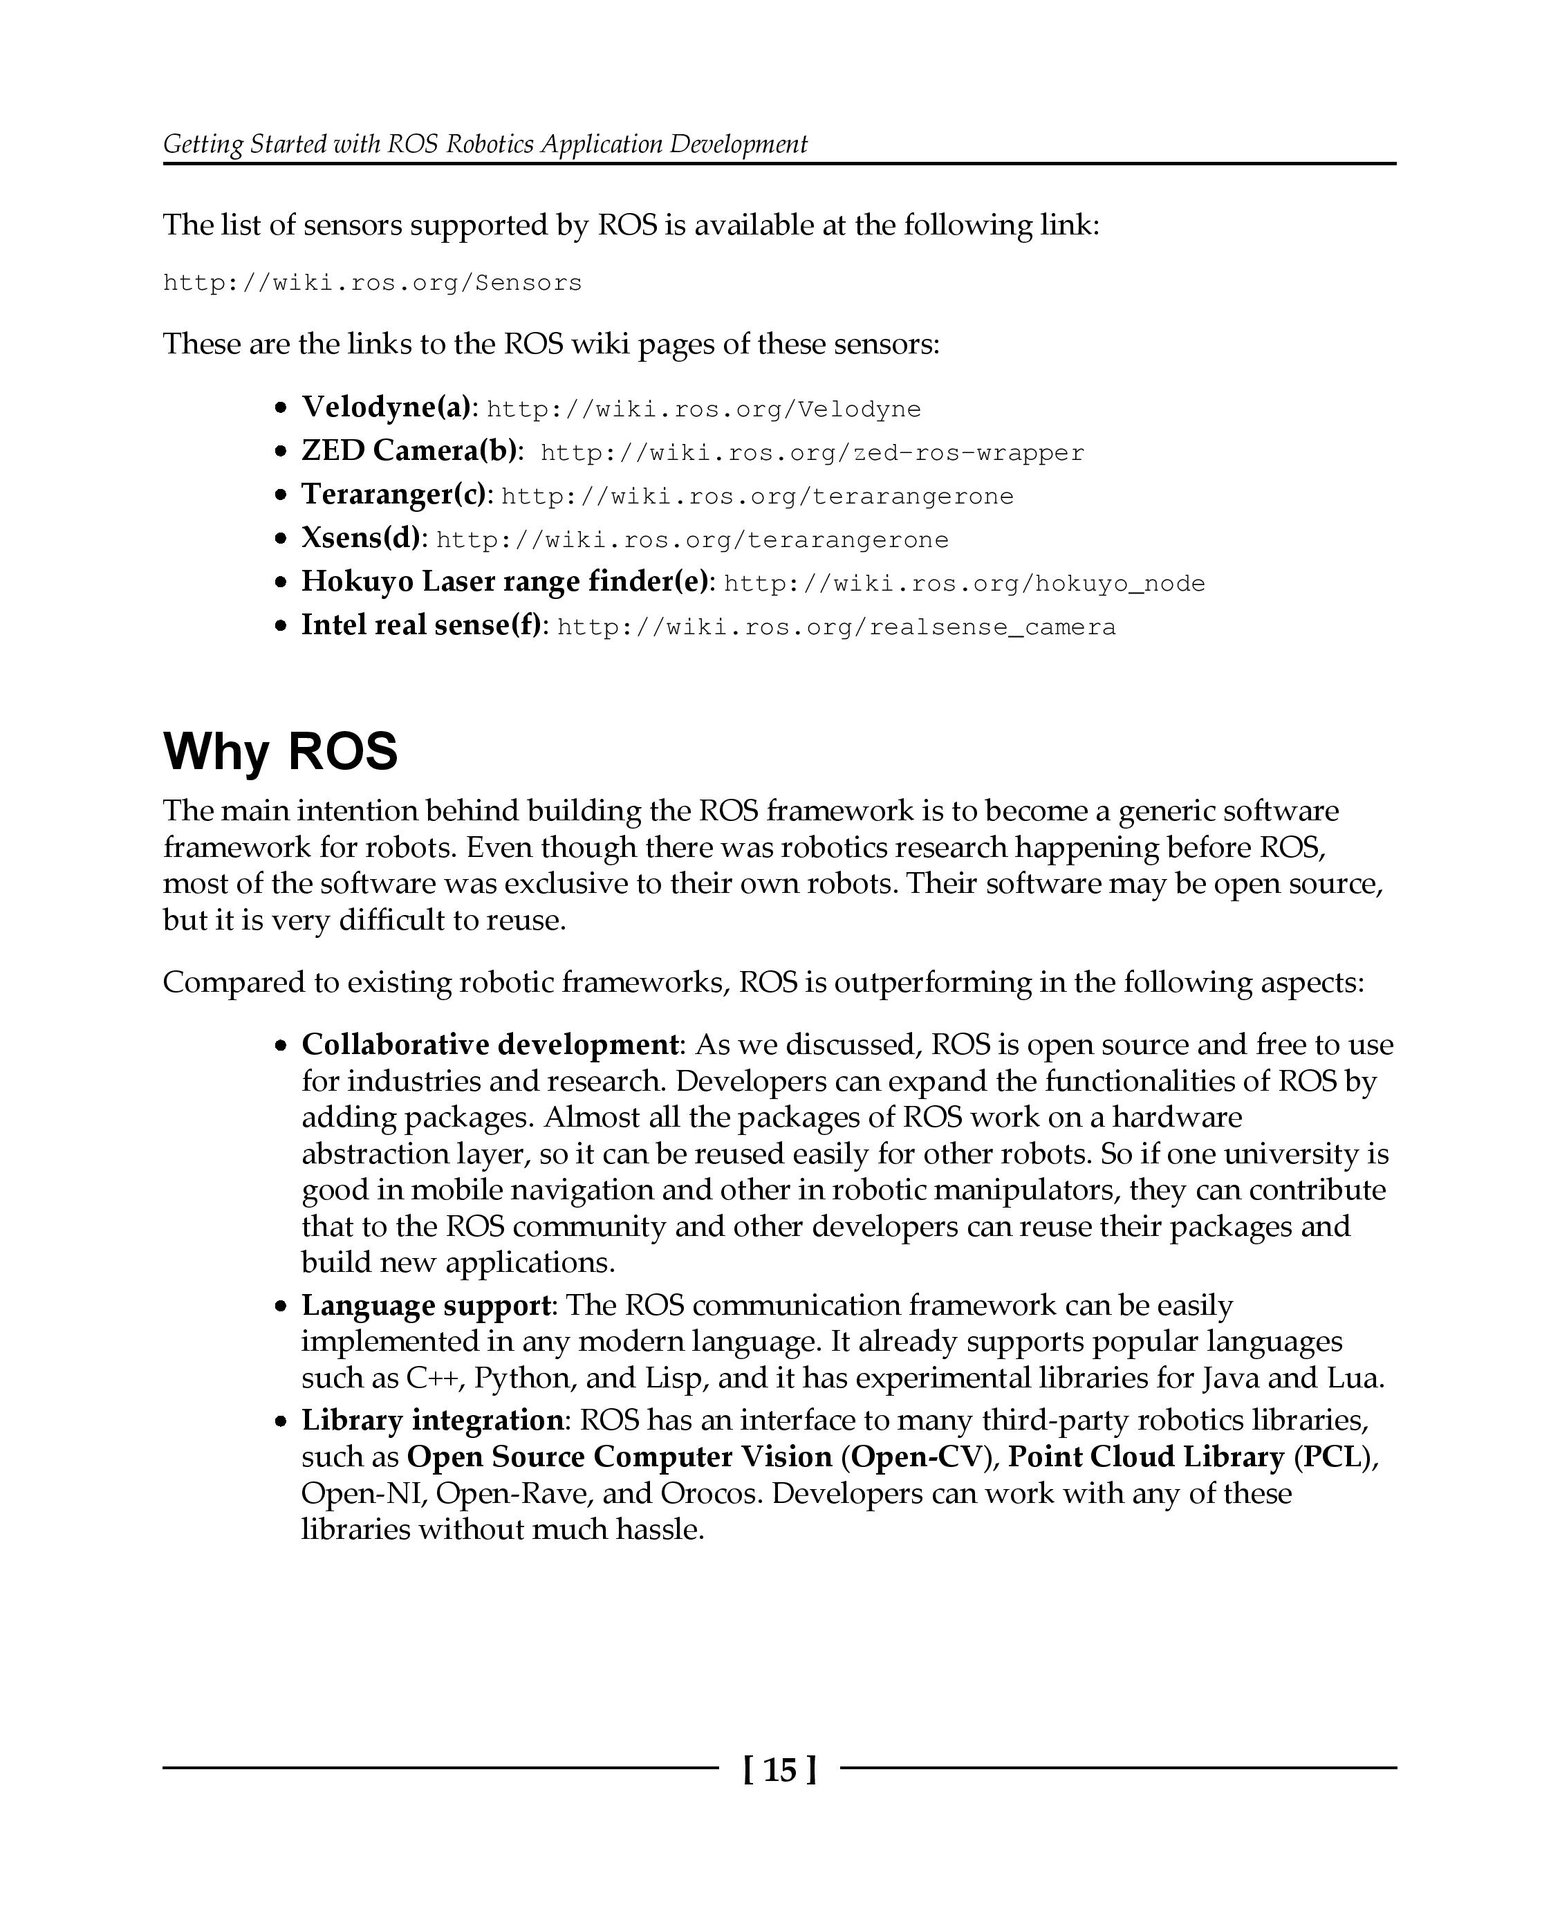 9781783554713 ros robotics projects %281%29 ilovepdf compressed %281%29 page 033